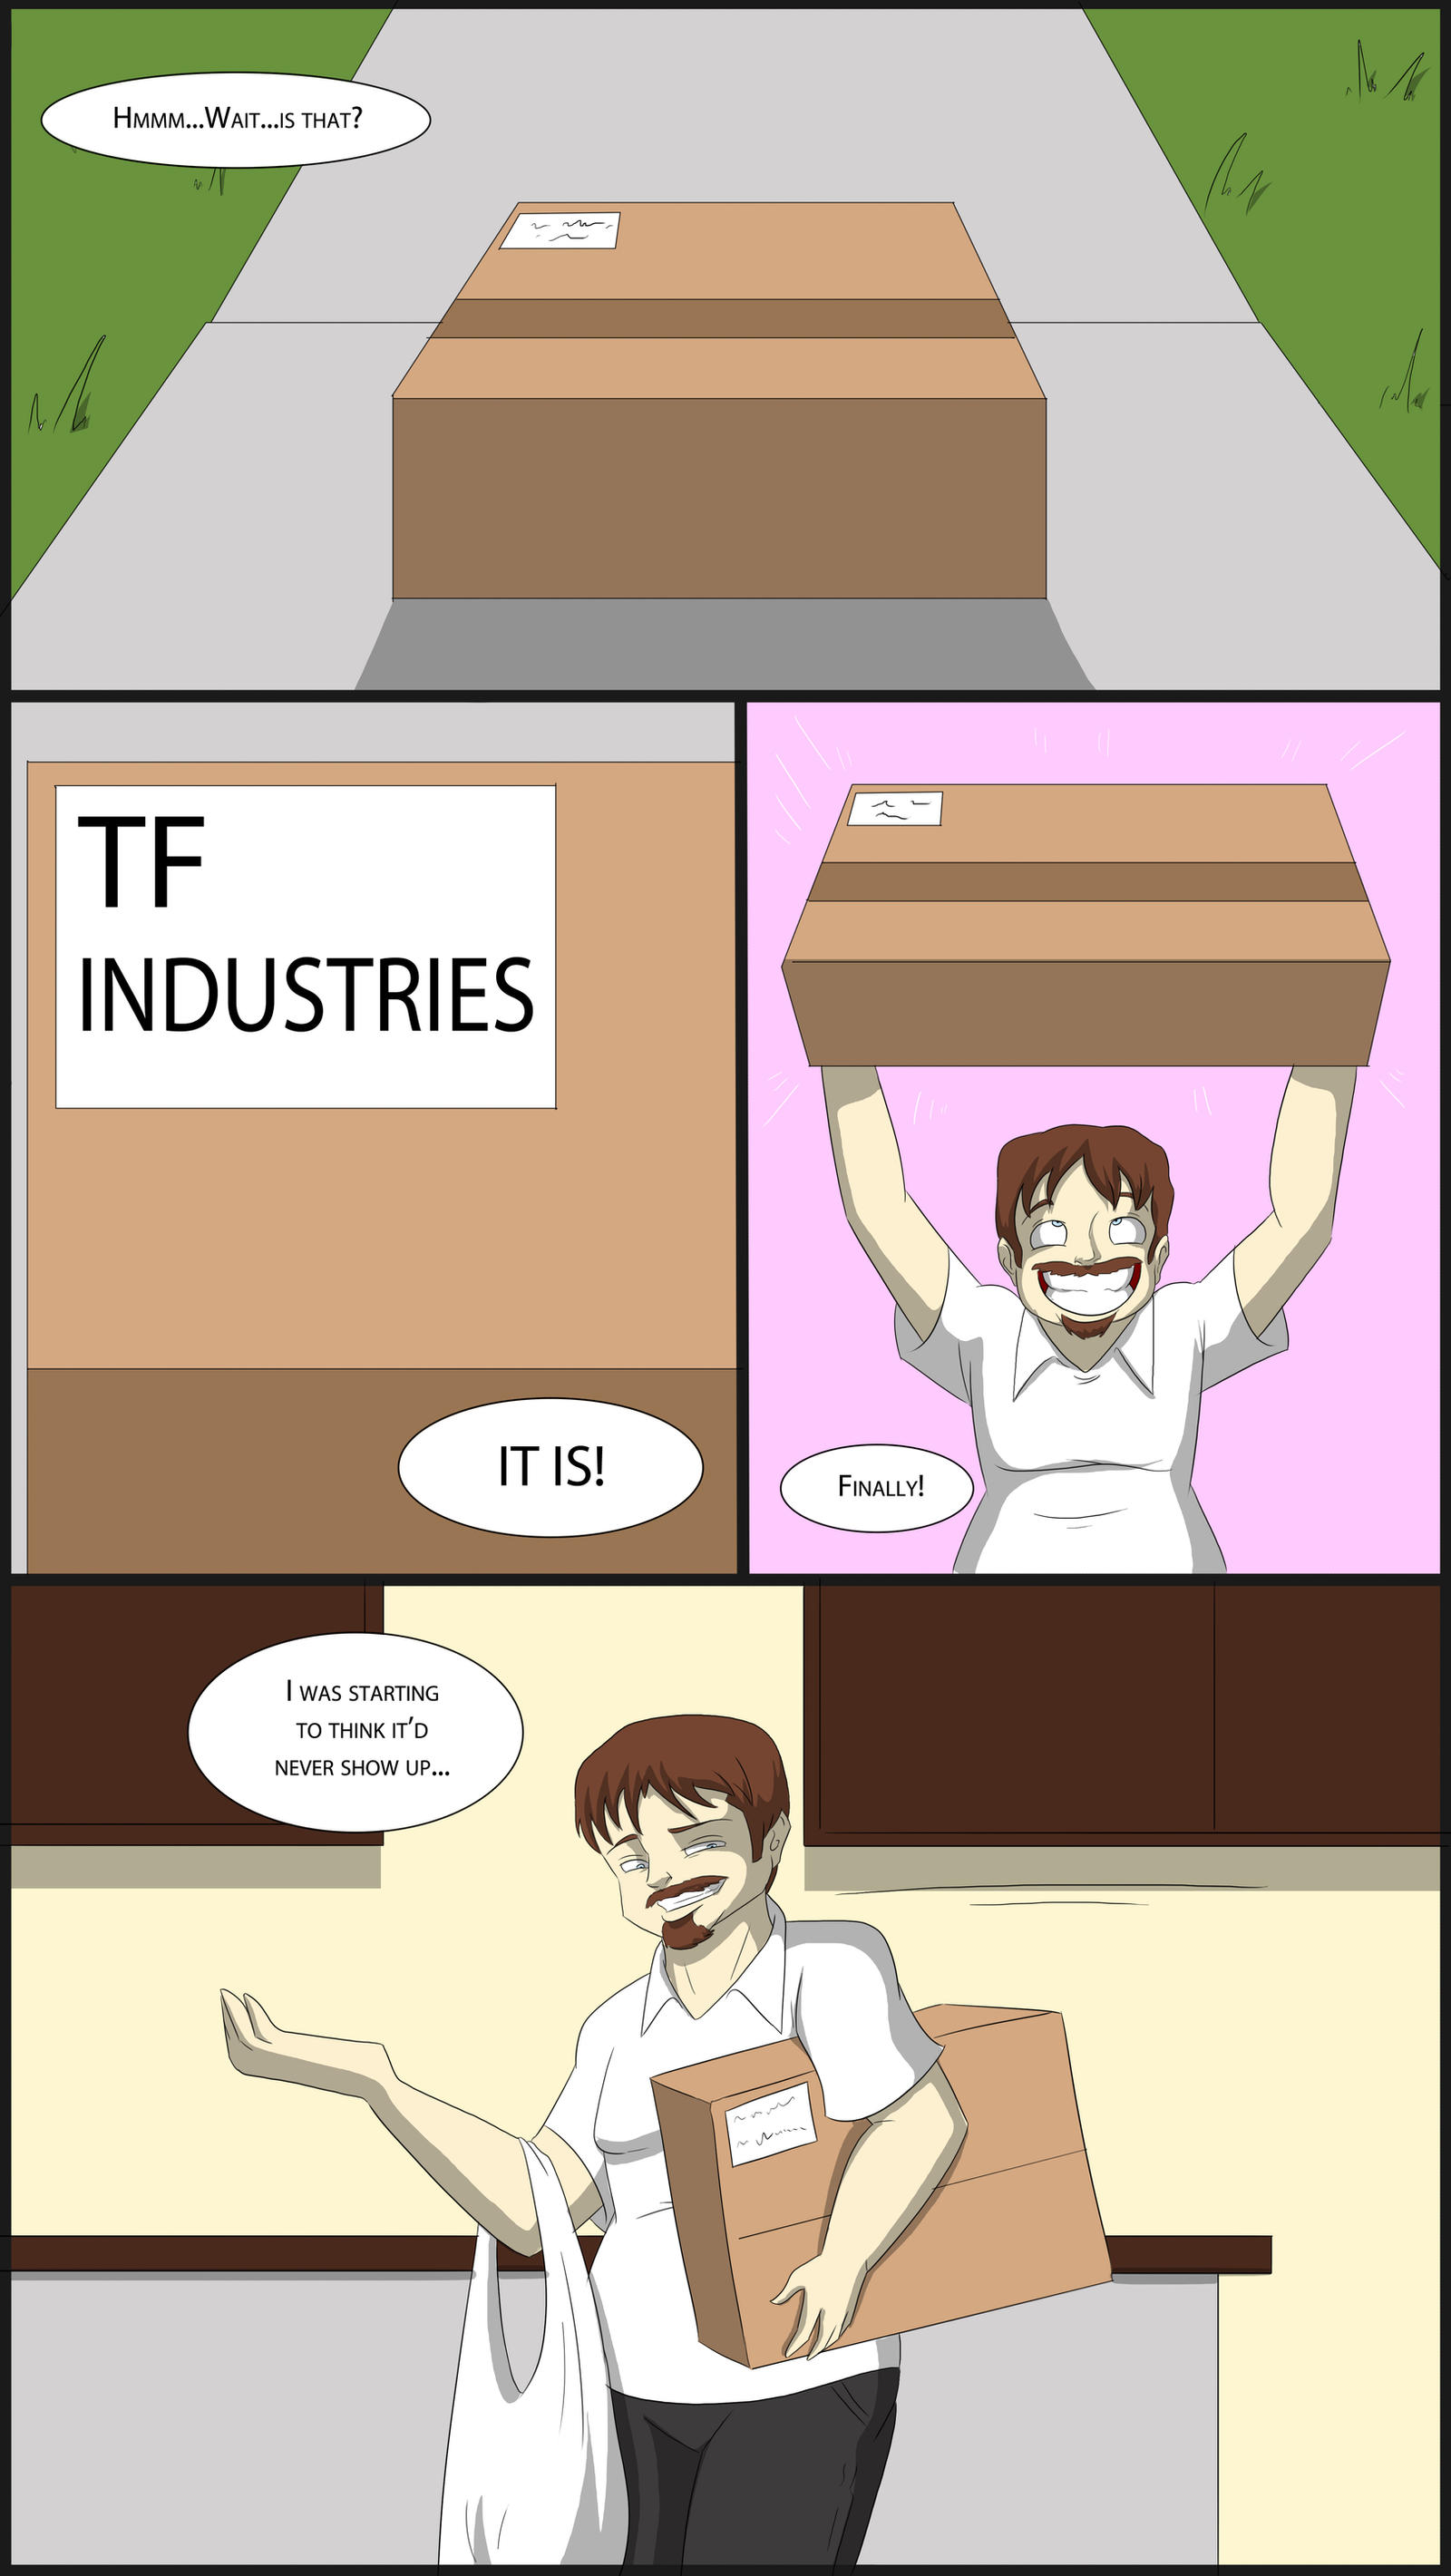 Tfsubmissions